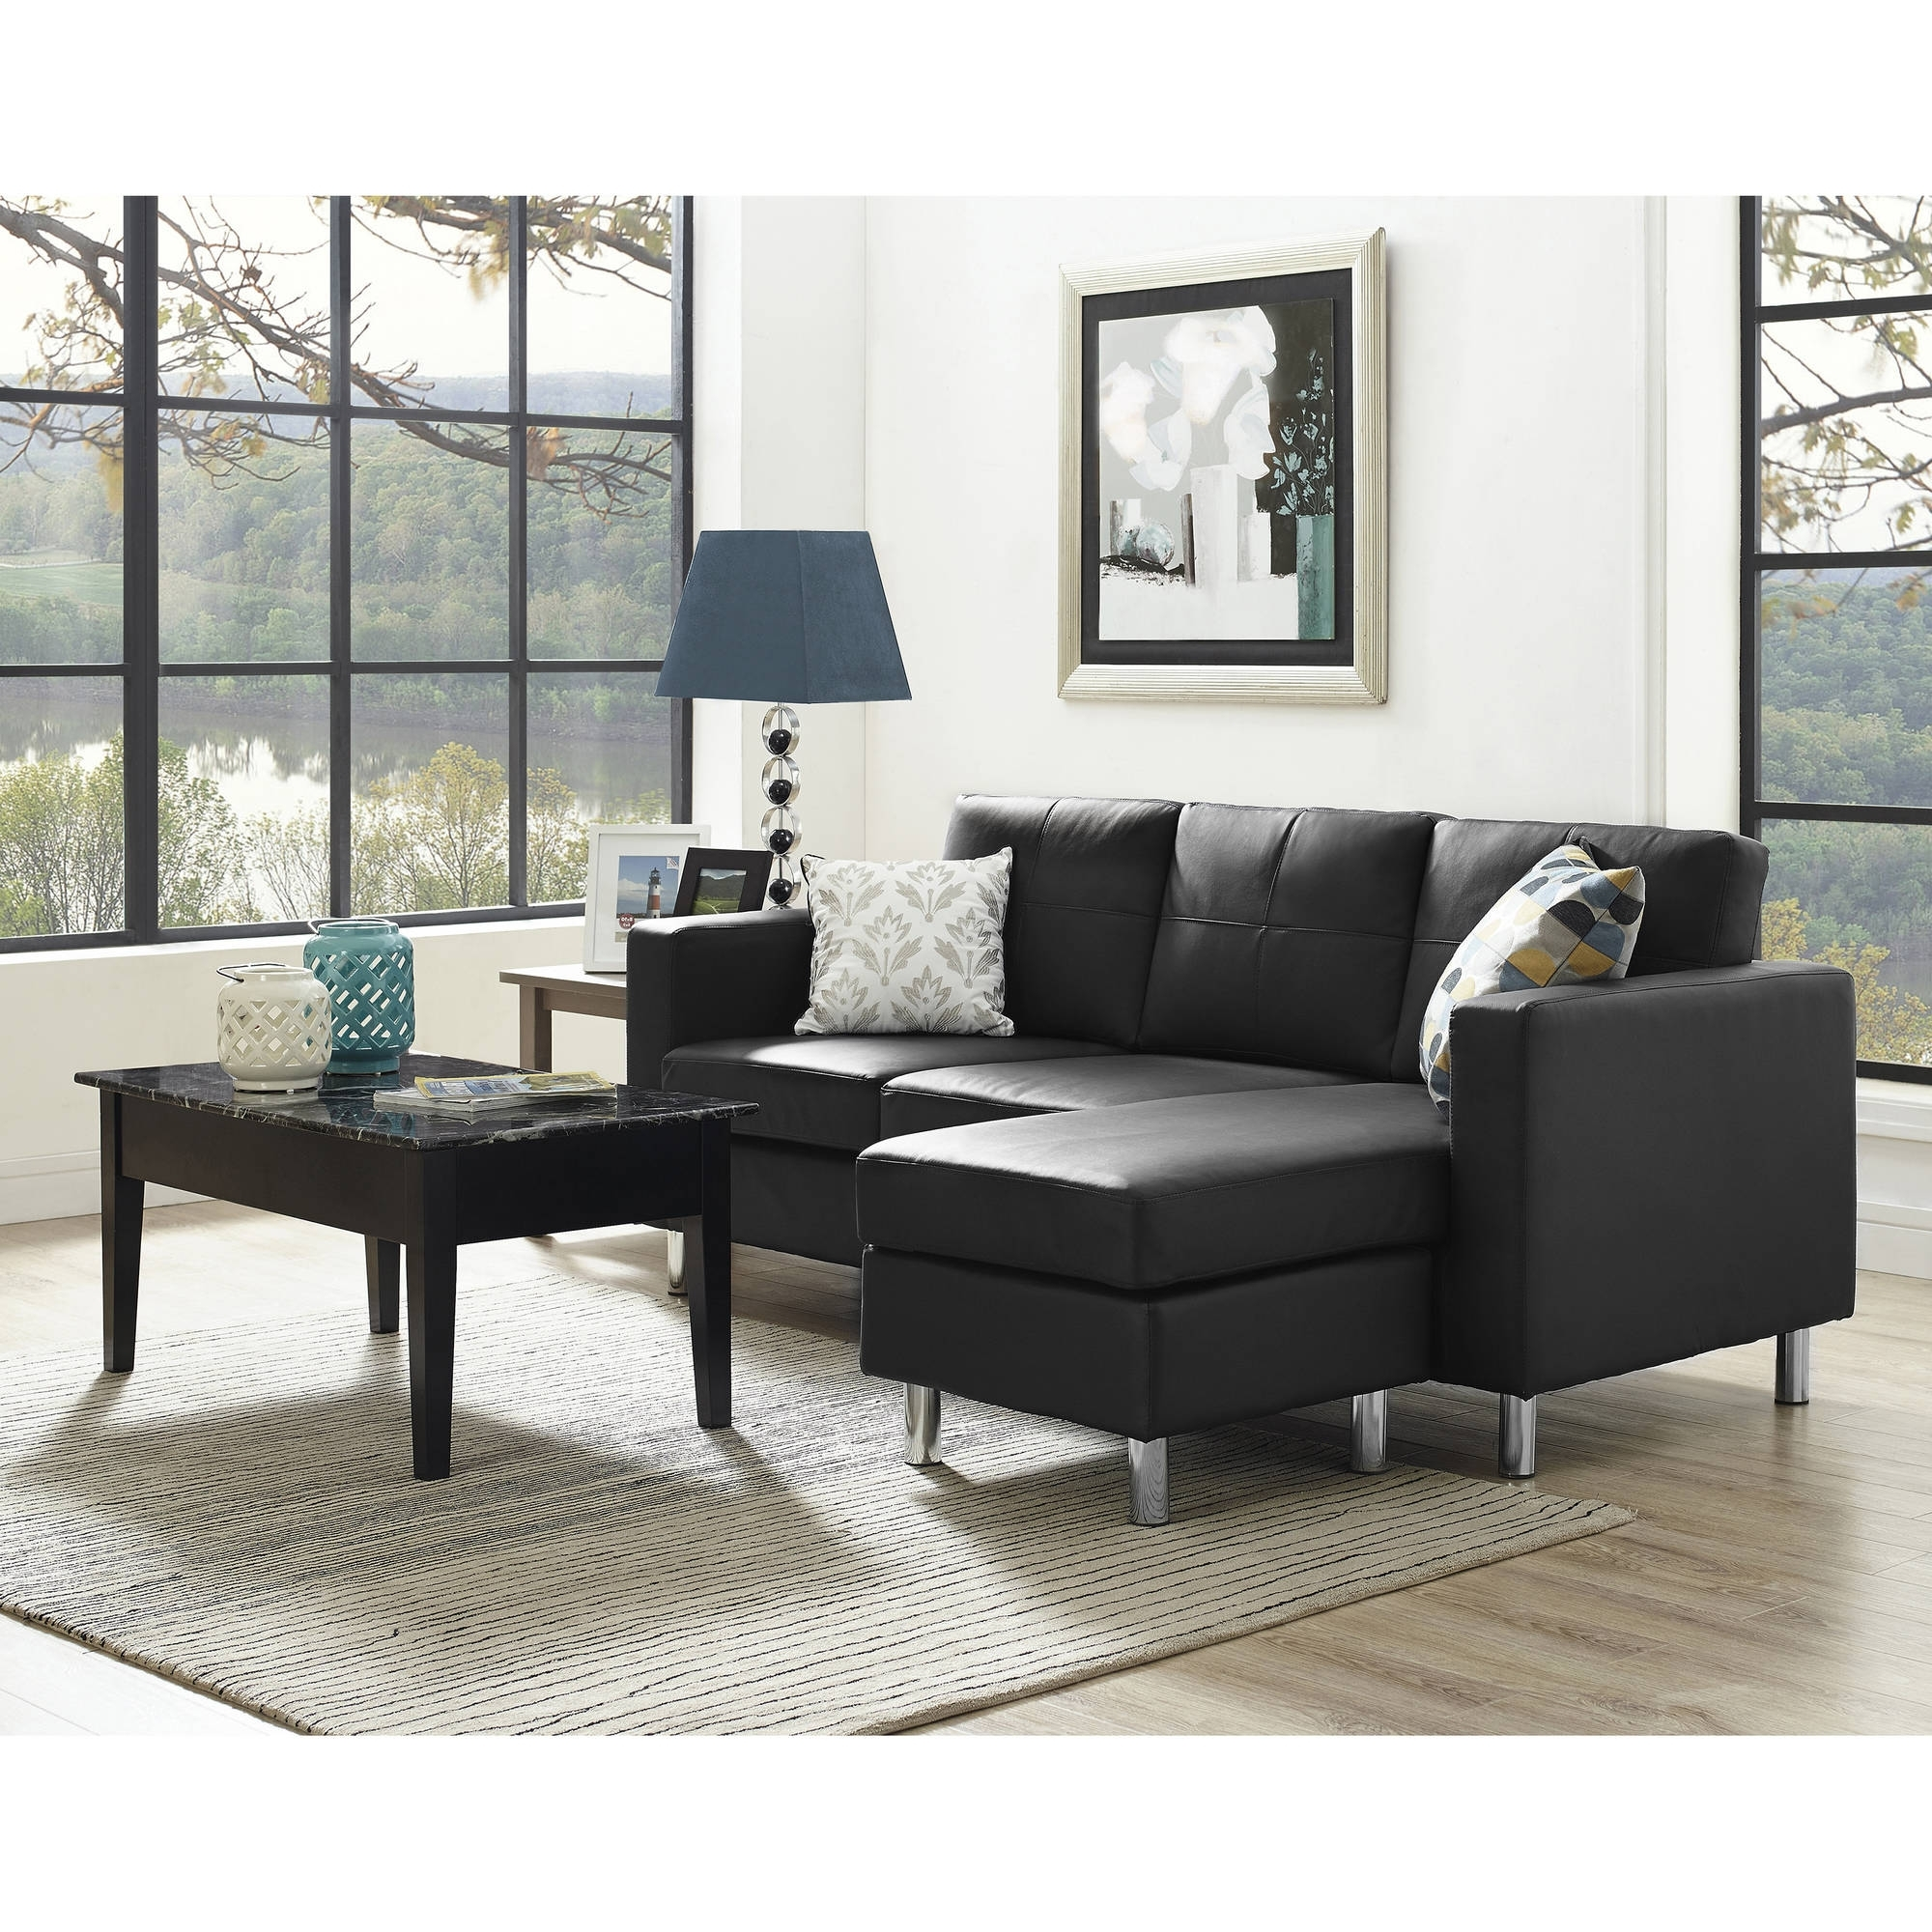 Well Known Sectional Sofas For Small Spaces In Choice (View 4 of 15)